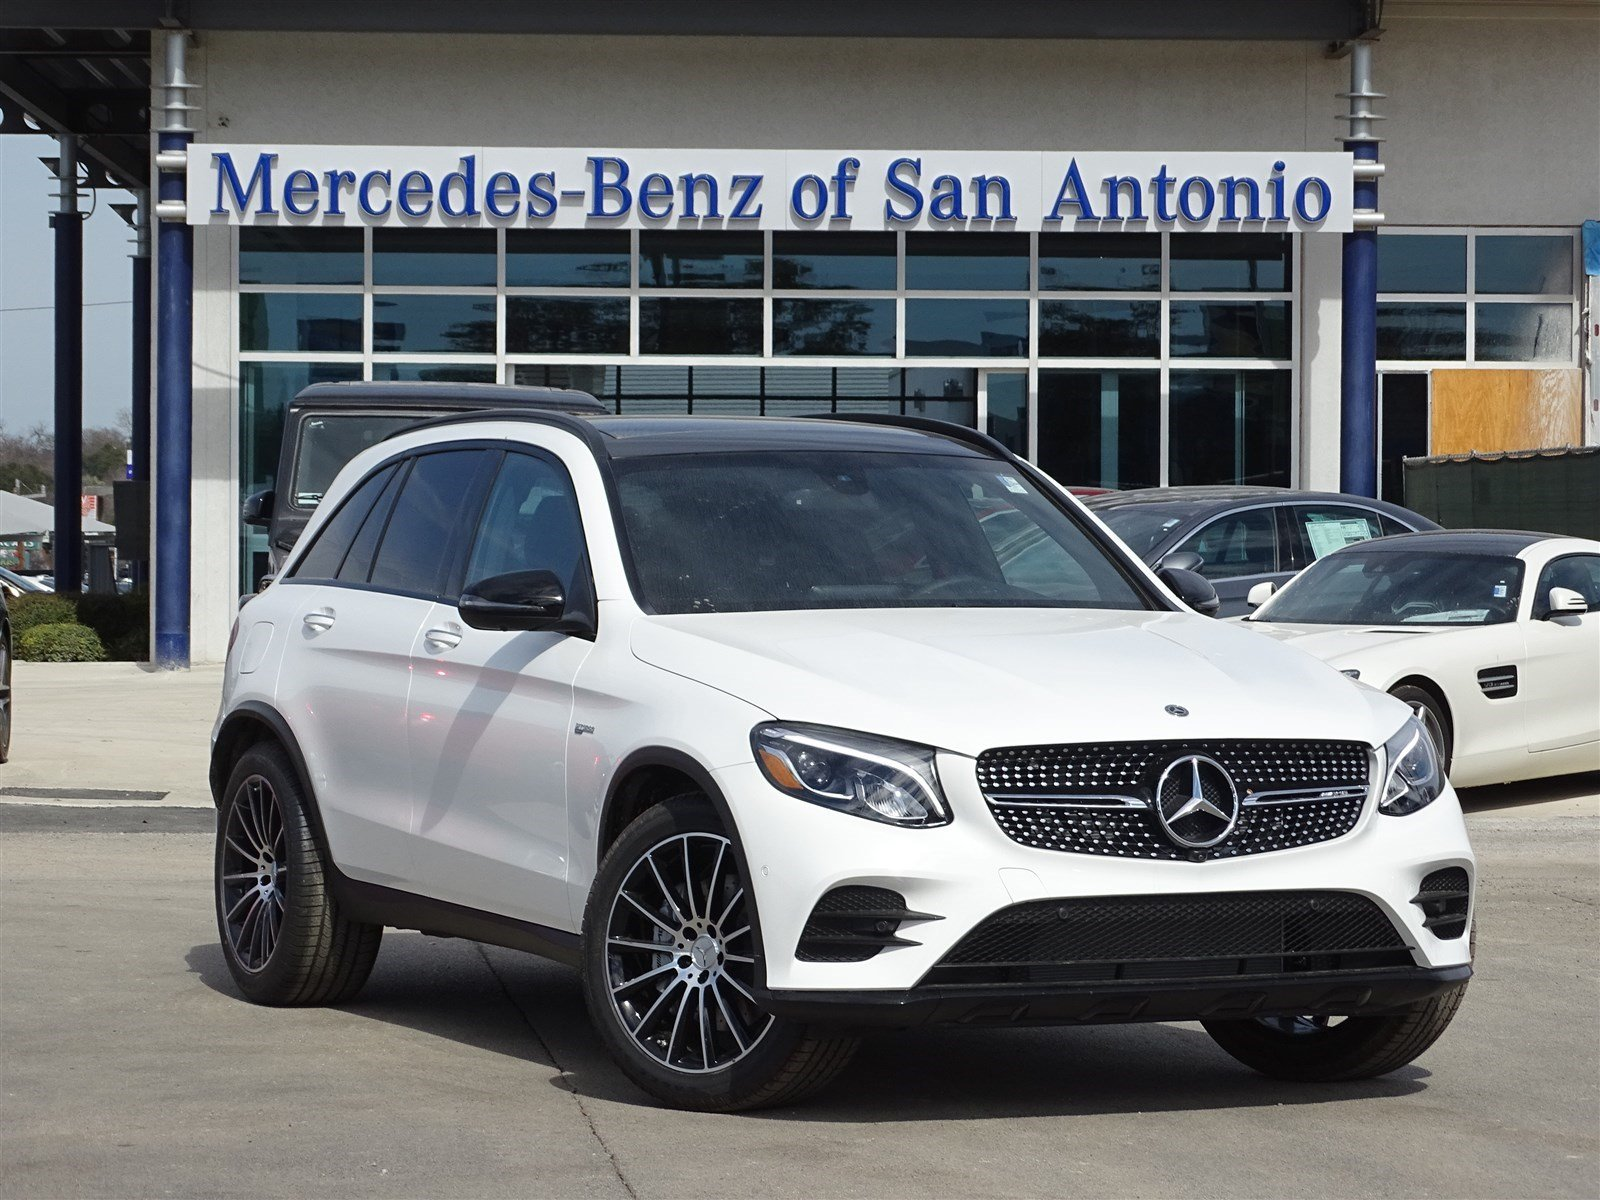 new 2018 mercedes benz glc amg glc 43 suv suv in san